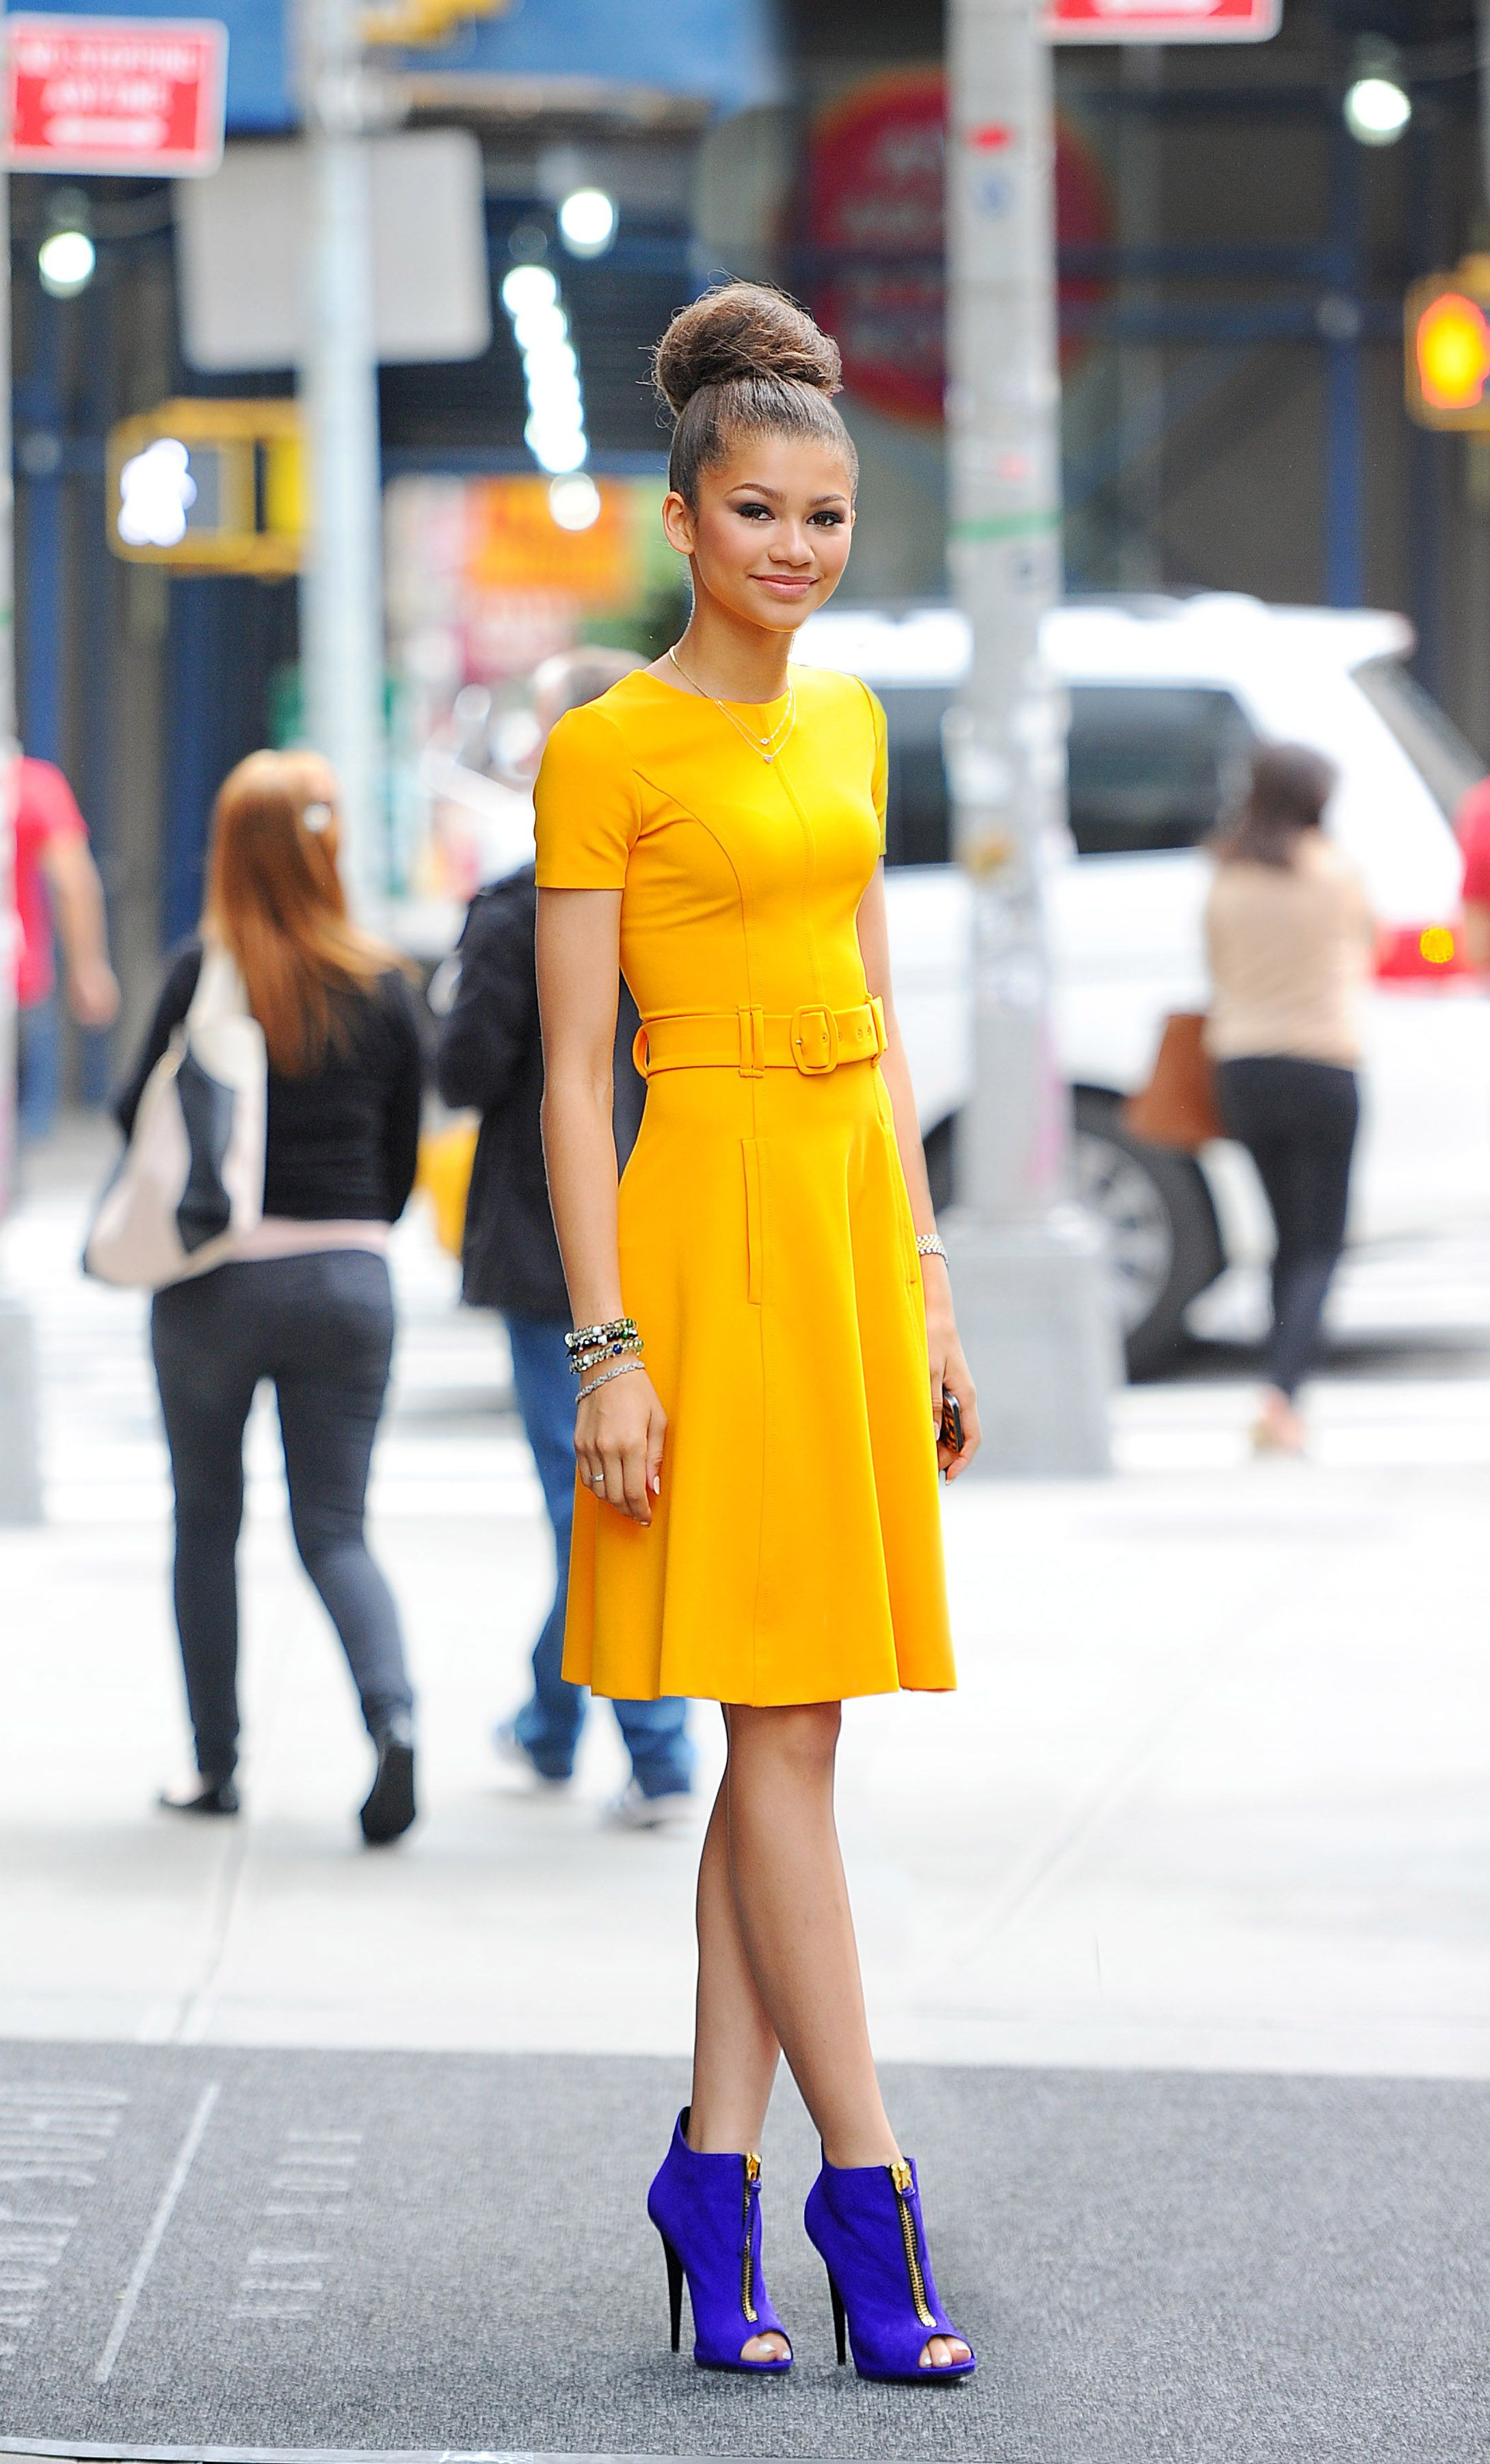 Mustard yellow dress with bright blue shoes